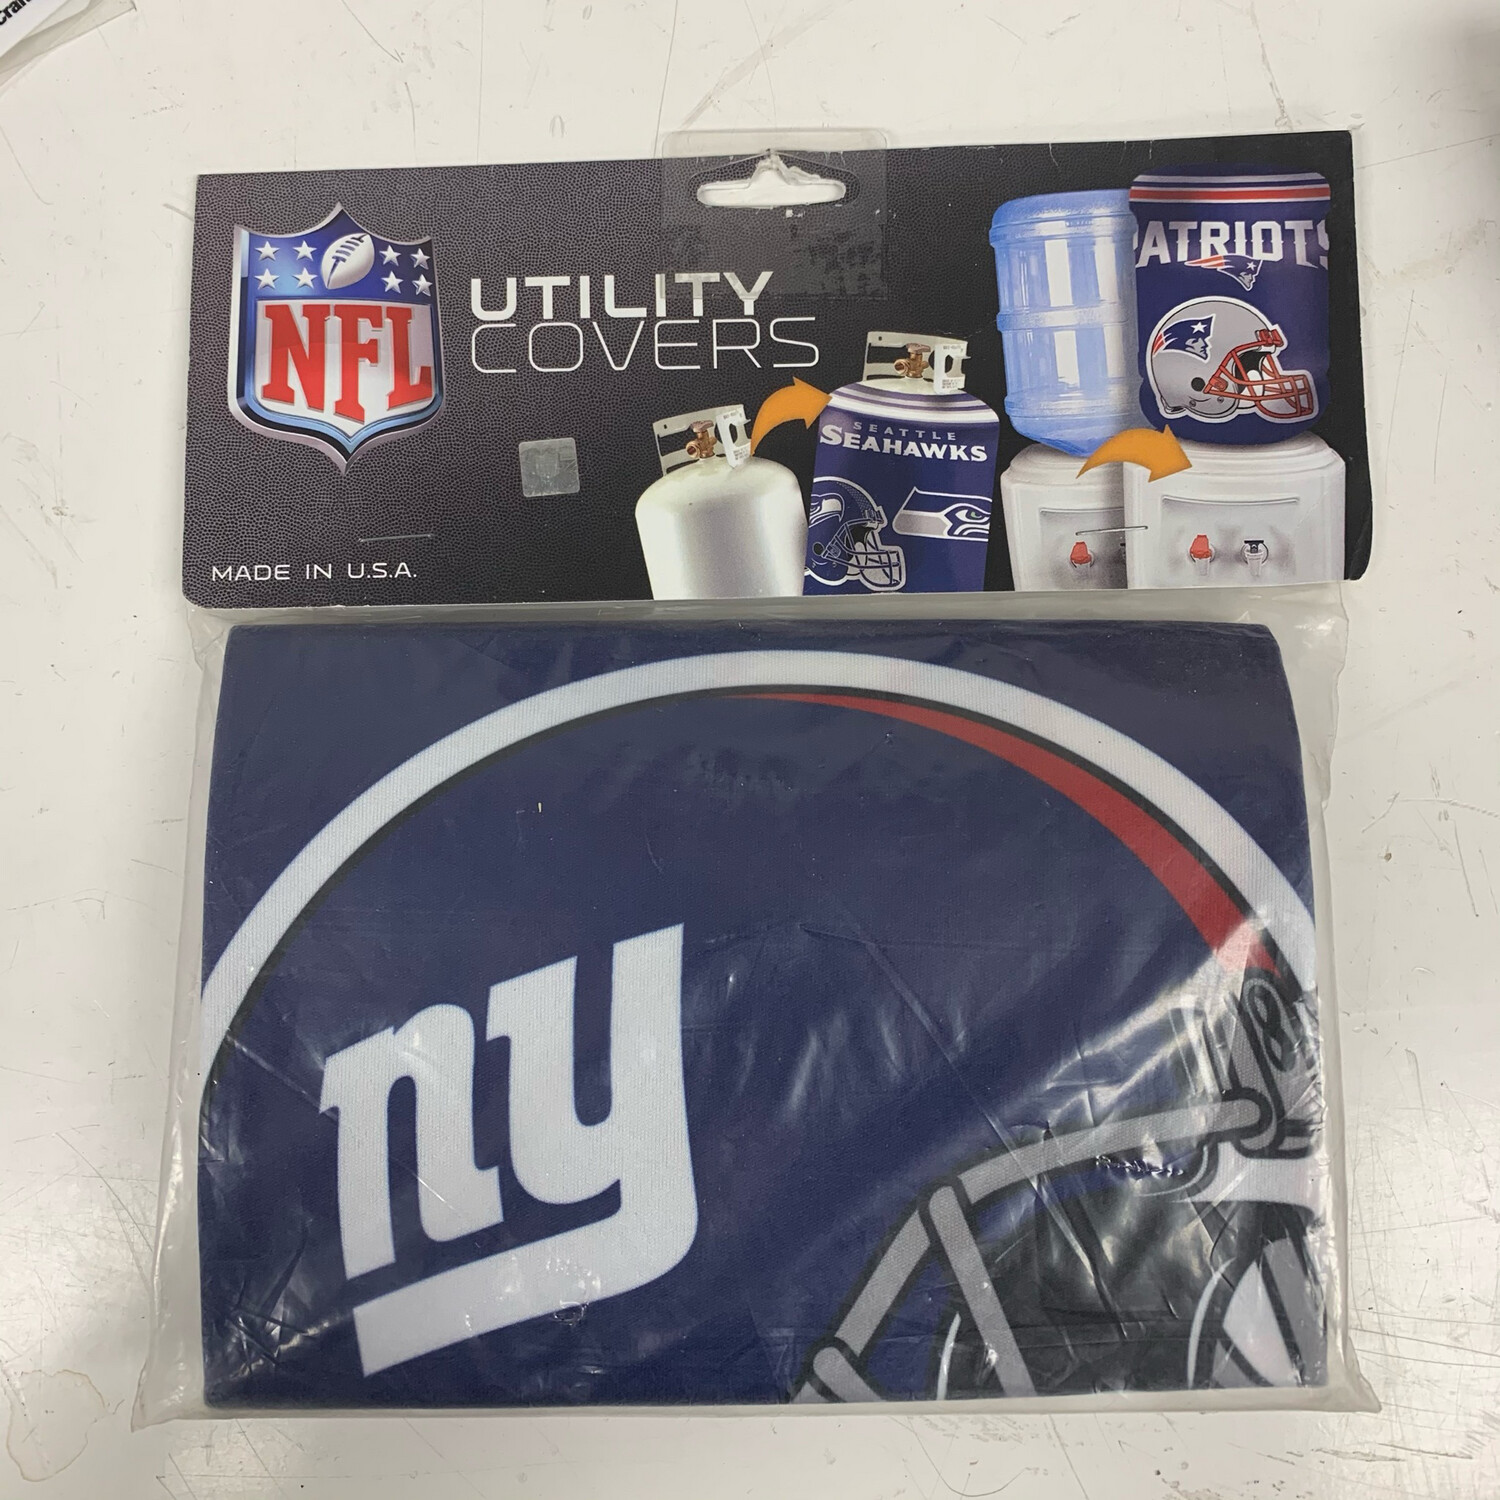 NY Giants Utility Covers